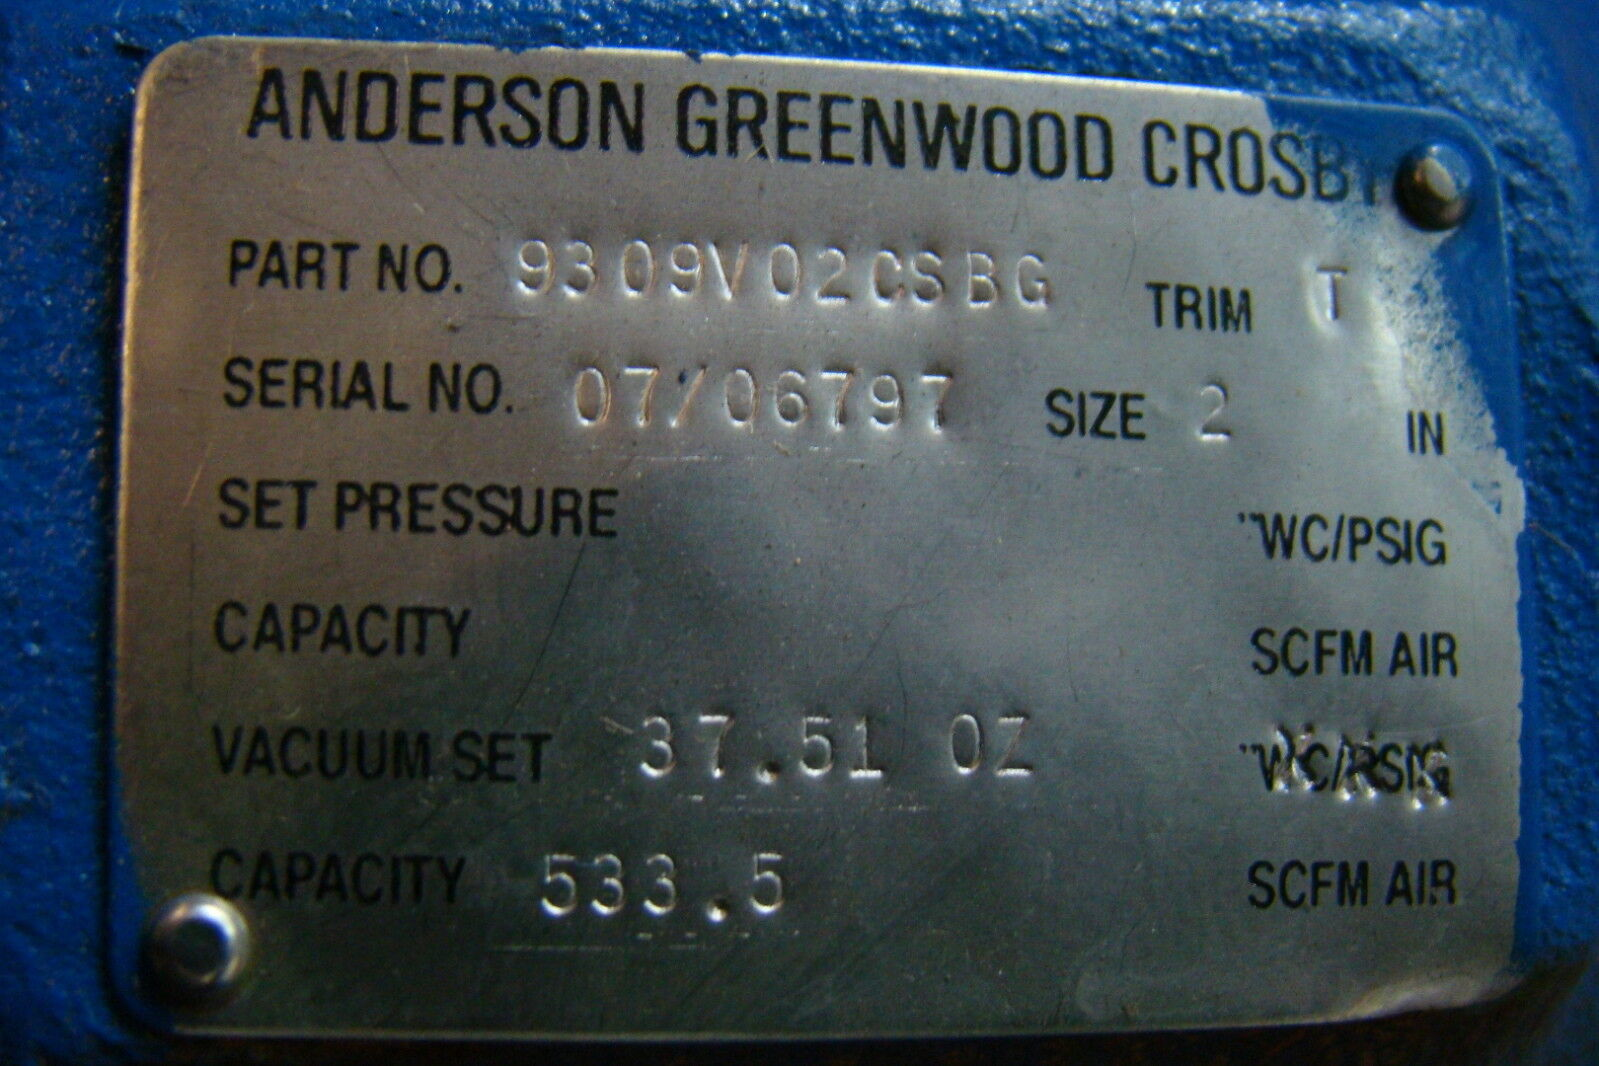 Details about anderson greenwood crosby relief valve 9309v02csbg